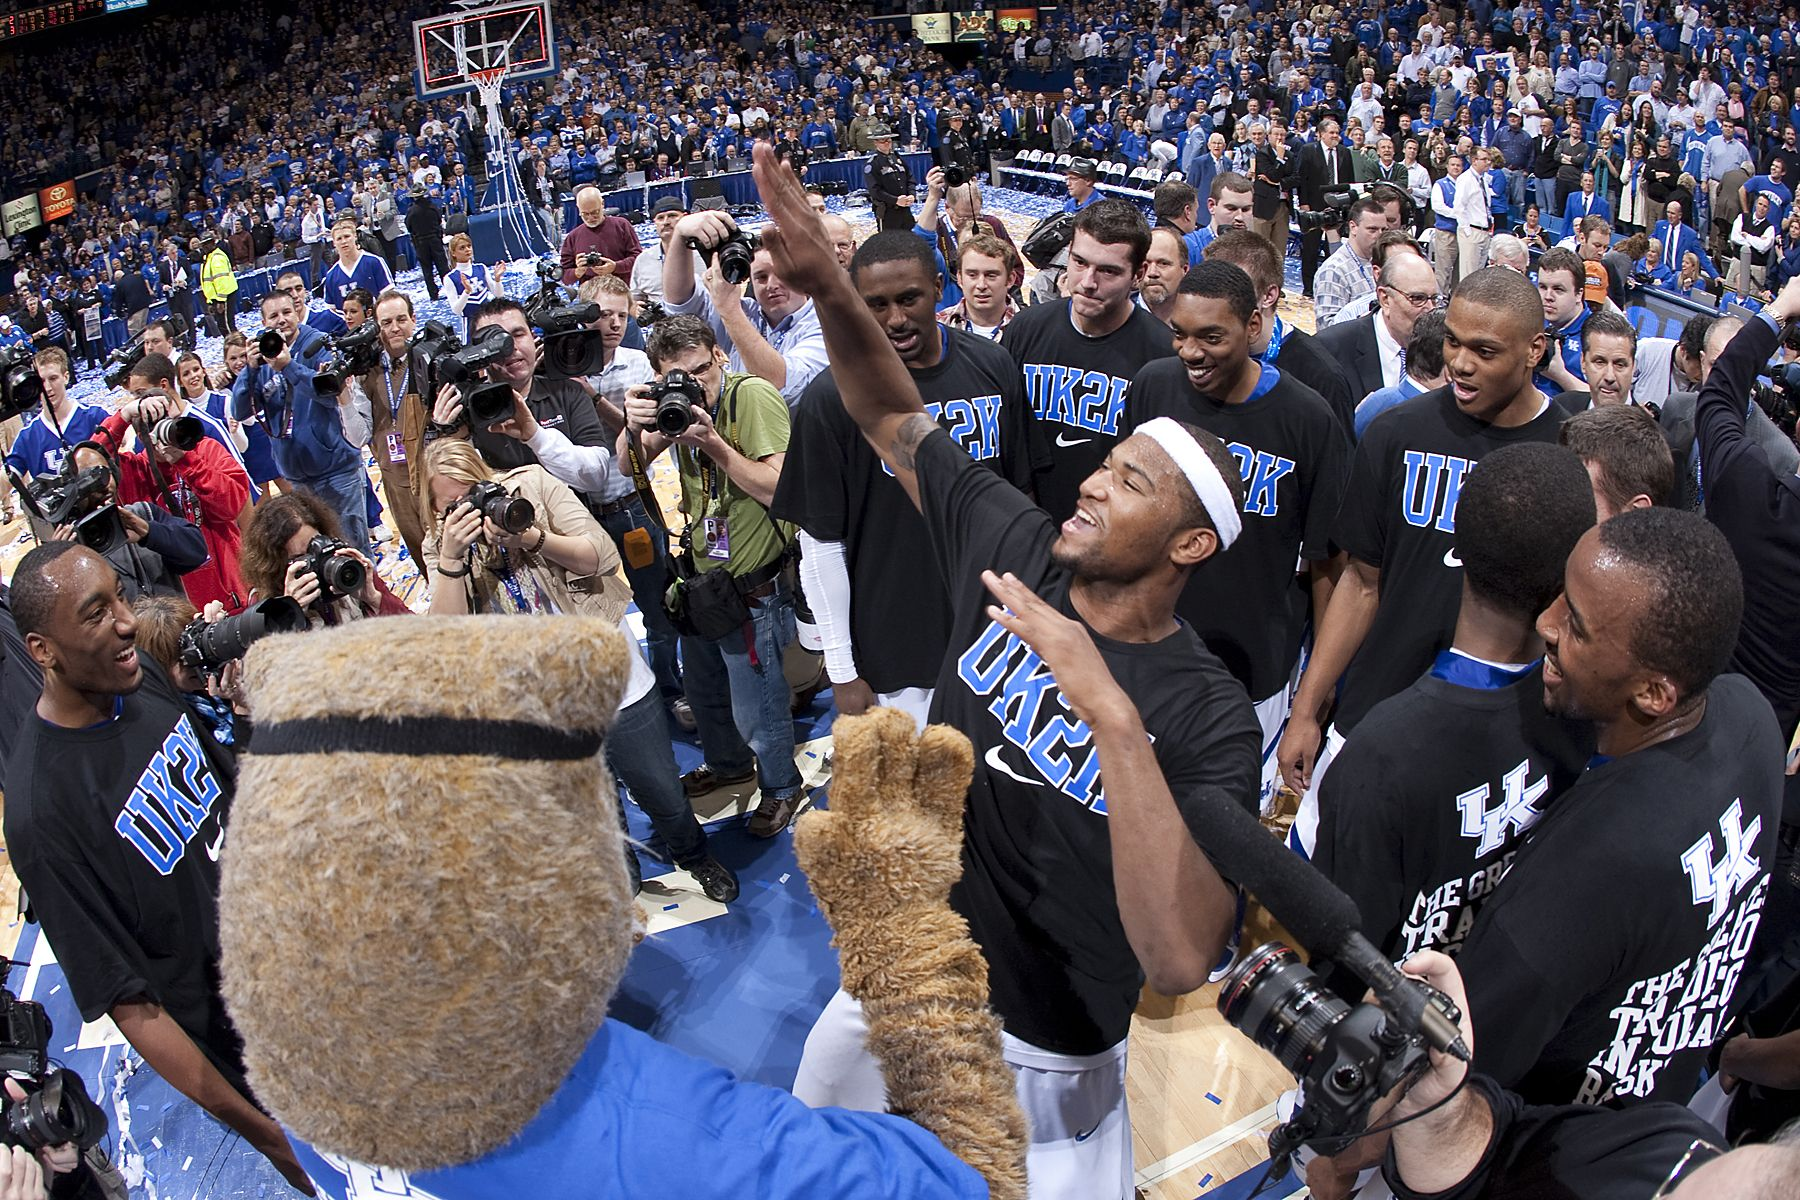 Fave Pics from the last 4. Kentucky Sports Radio In just 4